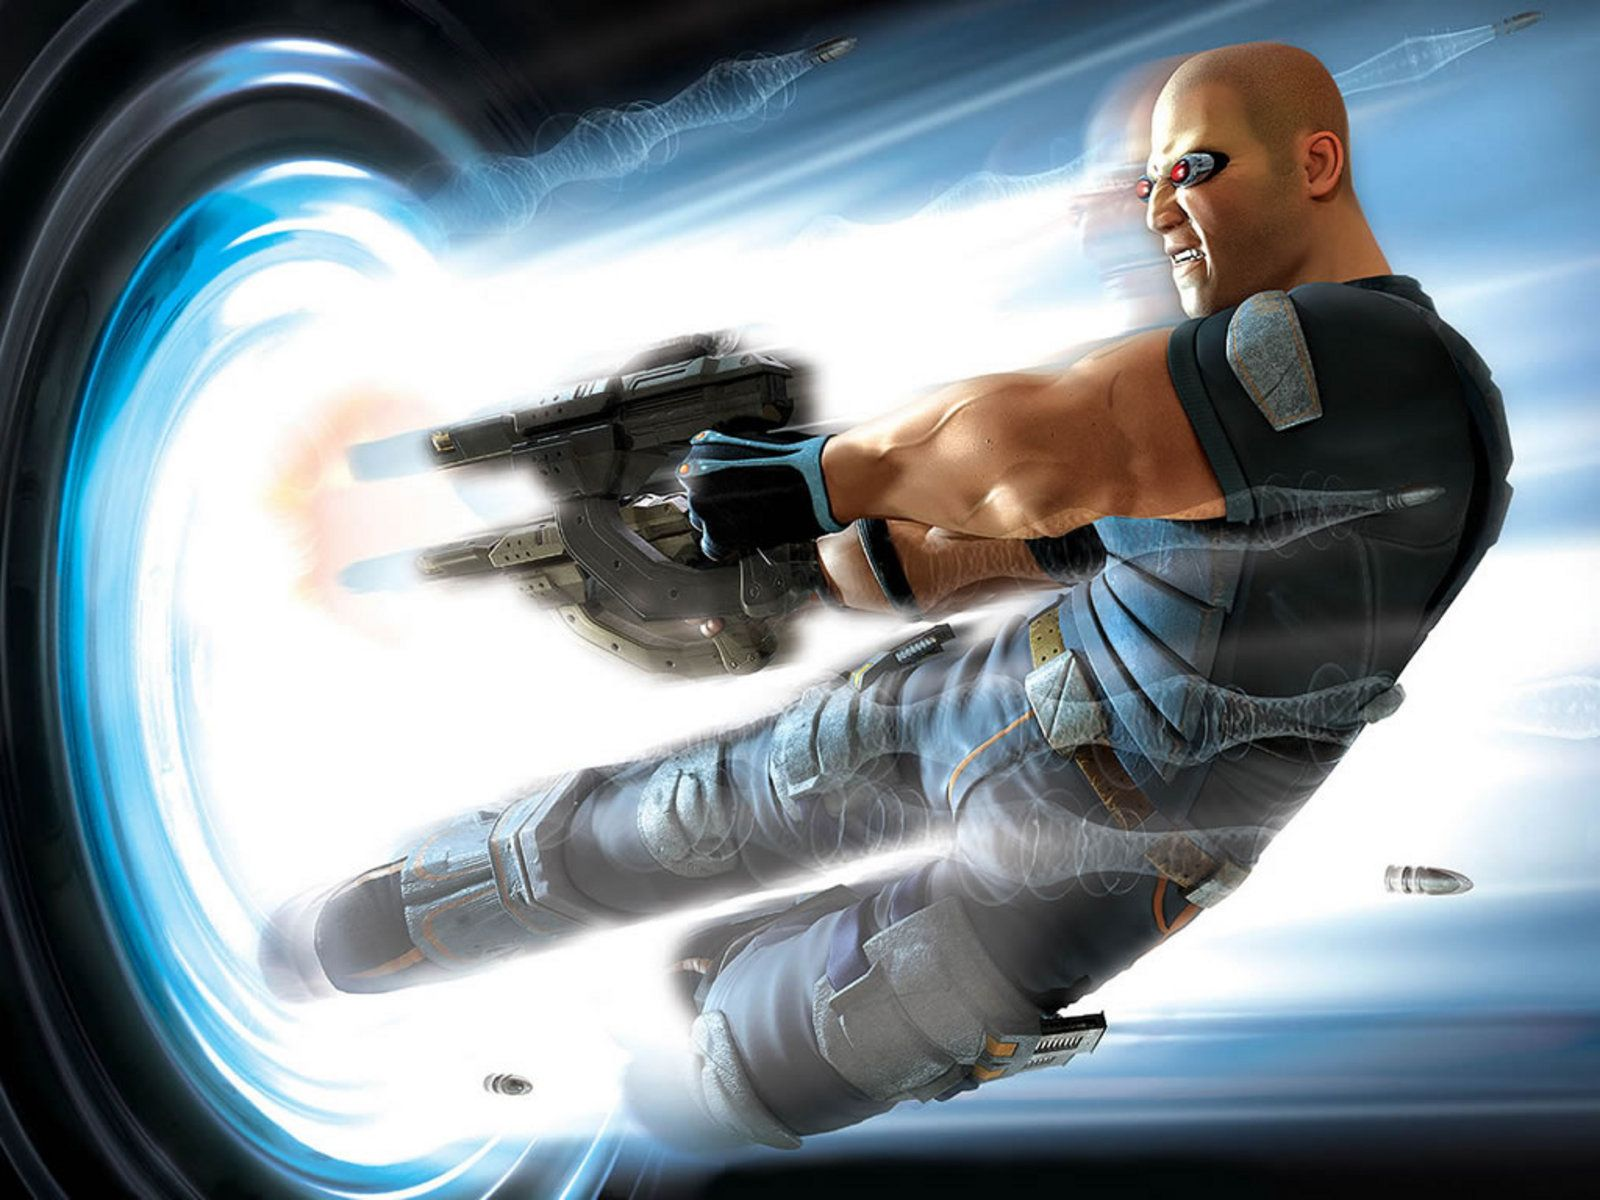 Fan-Made TimeSplitters Game Given Blessing by Crytek